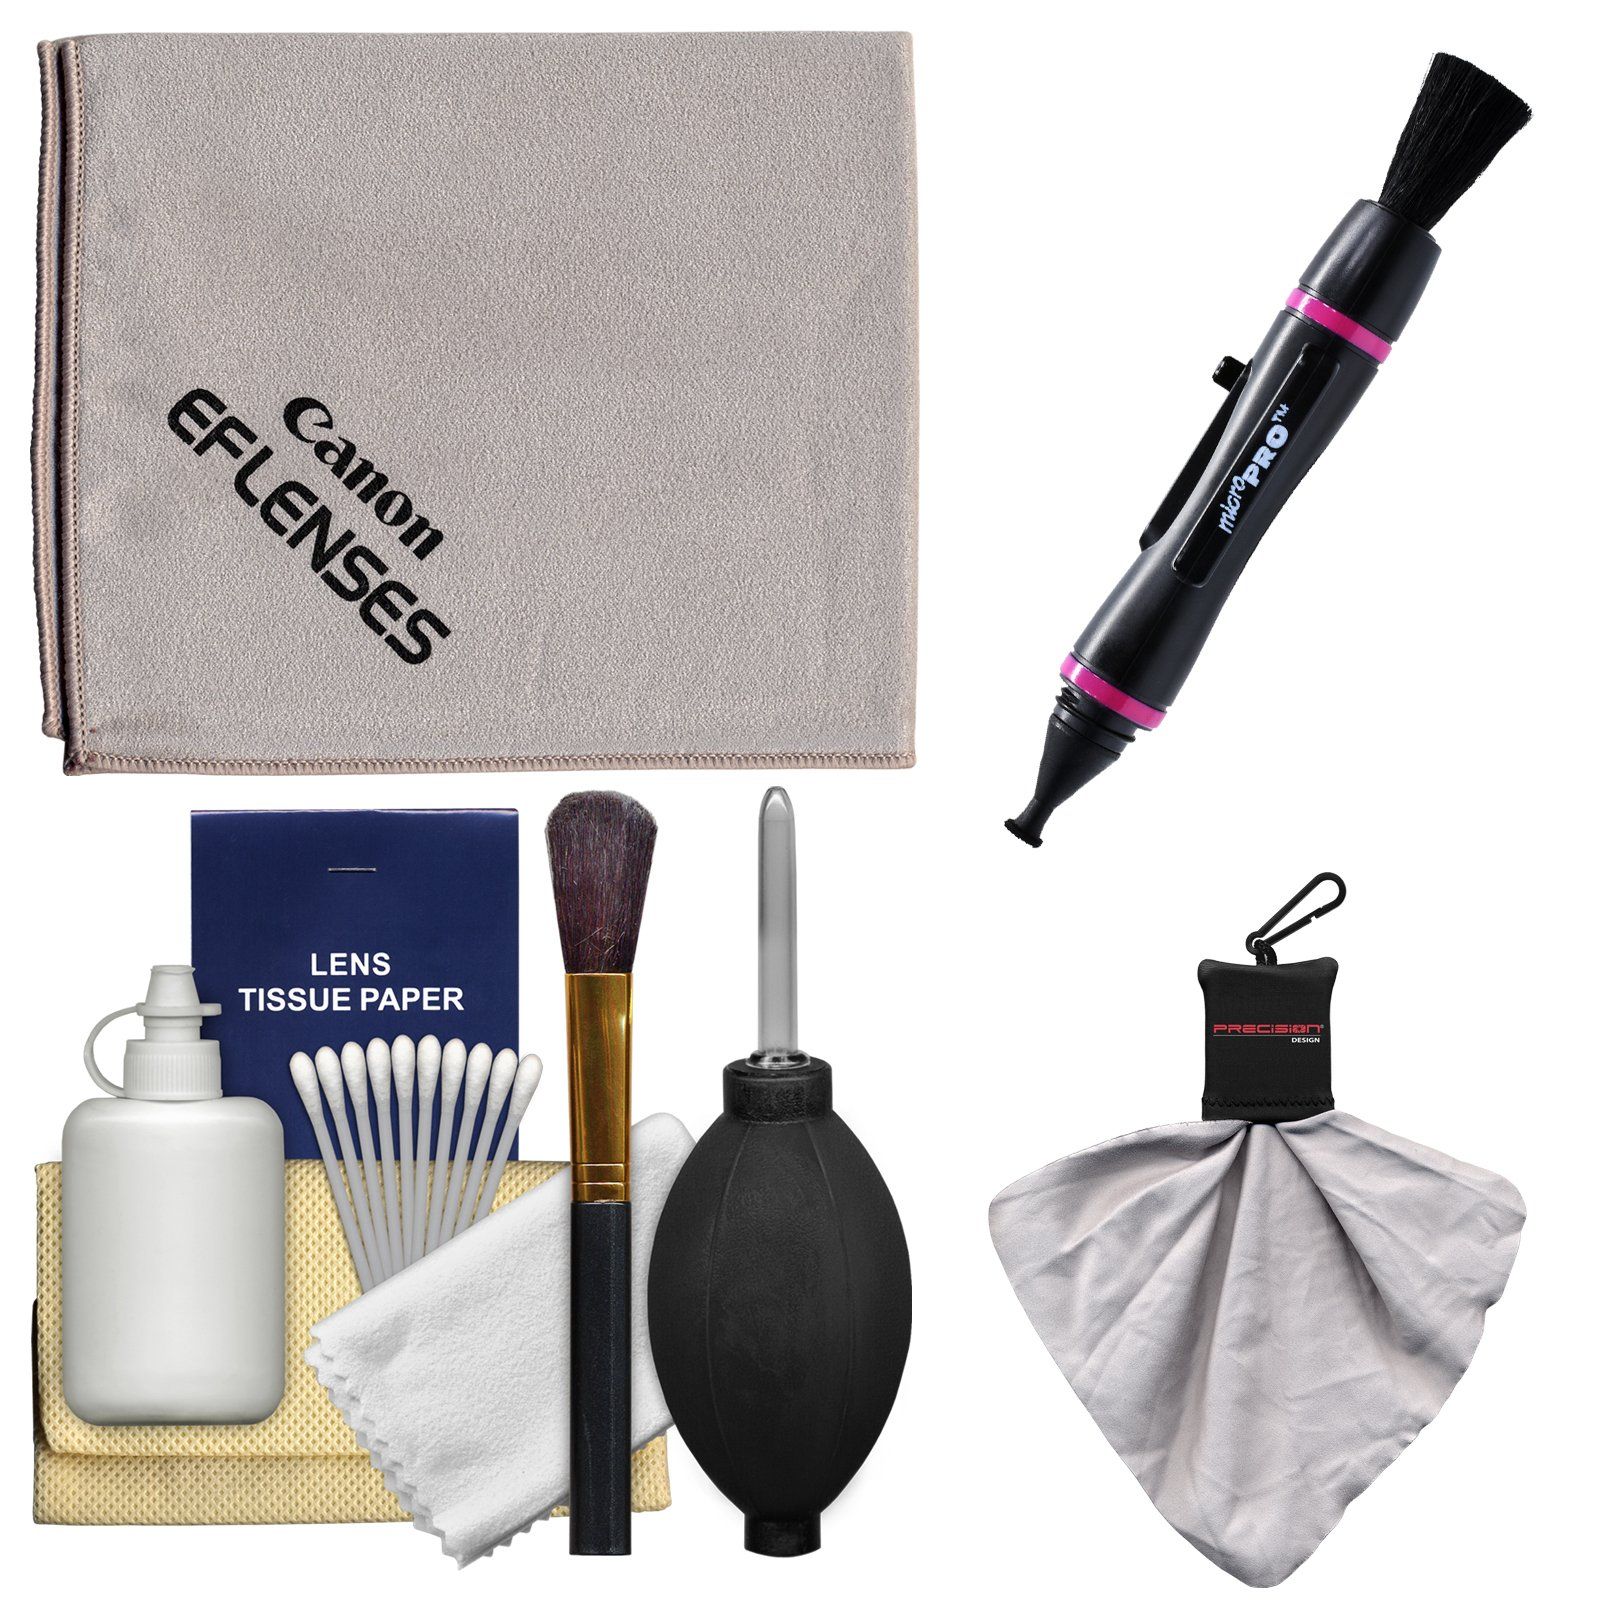 Canon Optical Digital Camera & Lens Cleaning Kit with Brush, Microfiber Cloth, Fluid & Tissue + Spudz Cloth + MicroPro Lenspen for Powershot SX50 & SX60 HS, G15, G16 & G1 G3 G7 X